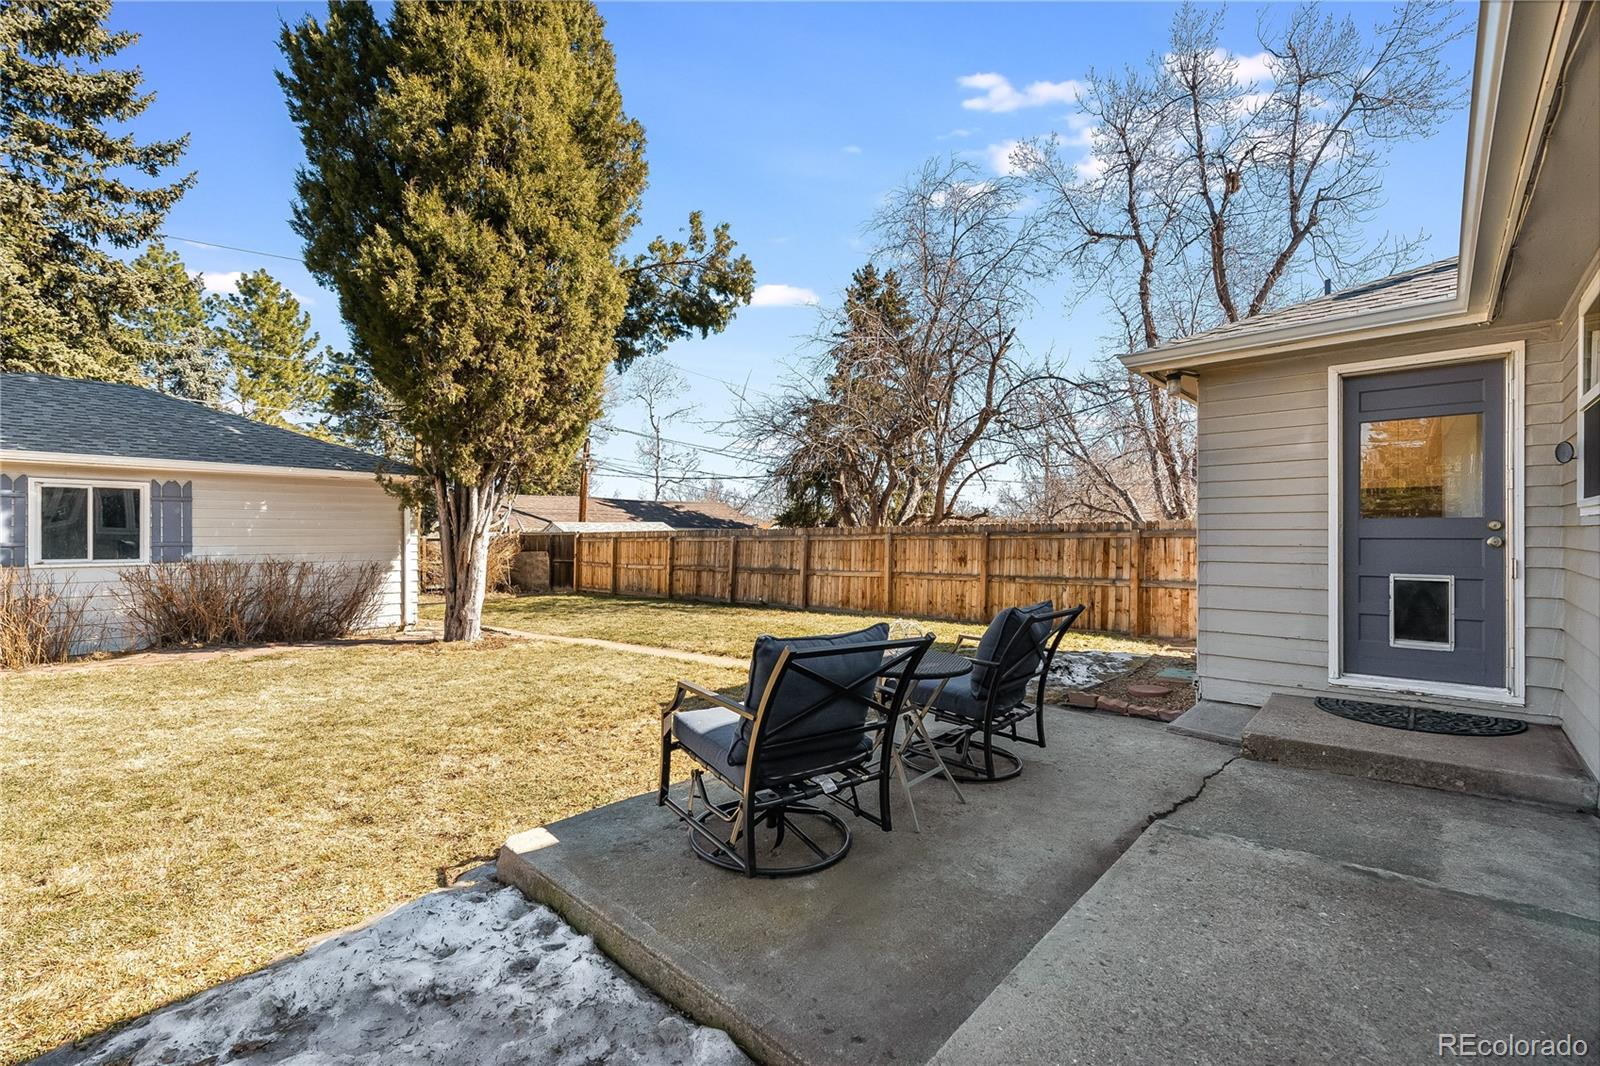 MLS# 2050120 - 17 - 7195 W 24th Place, Lakewood, CO 80214